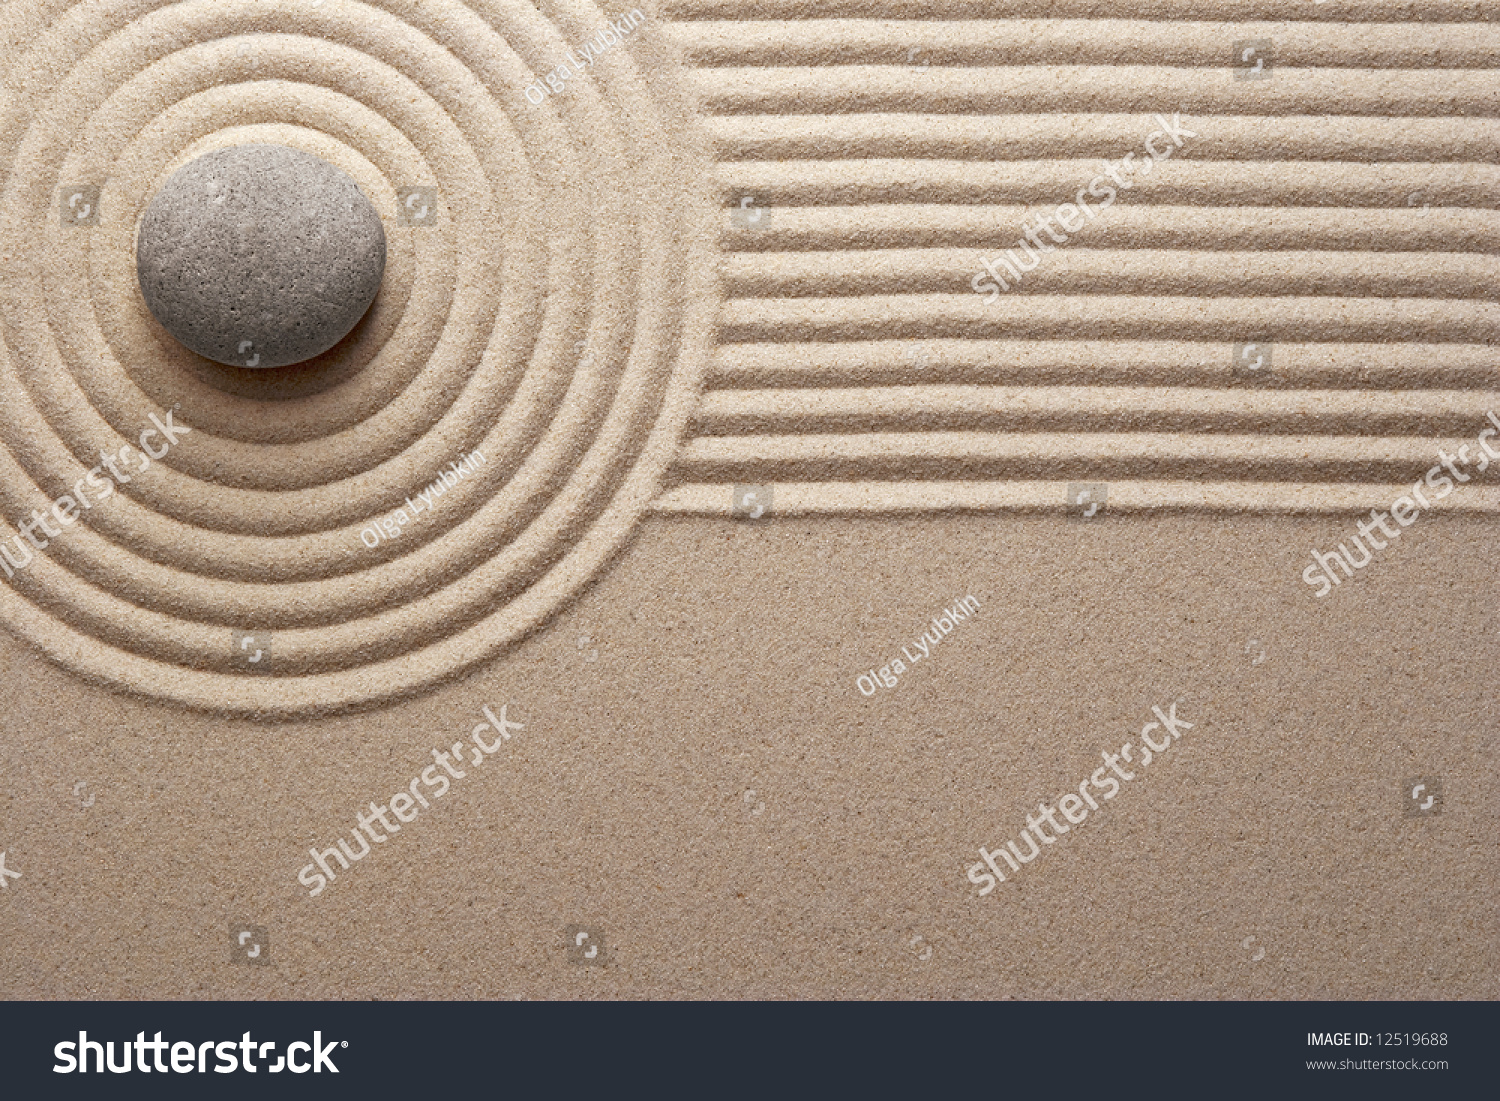 Zen Garden Stock Photo (Download Now) 12519688 - Shutterstock